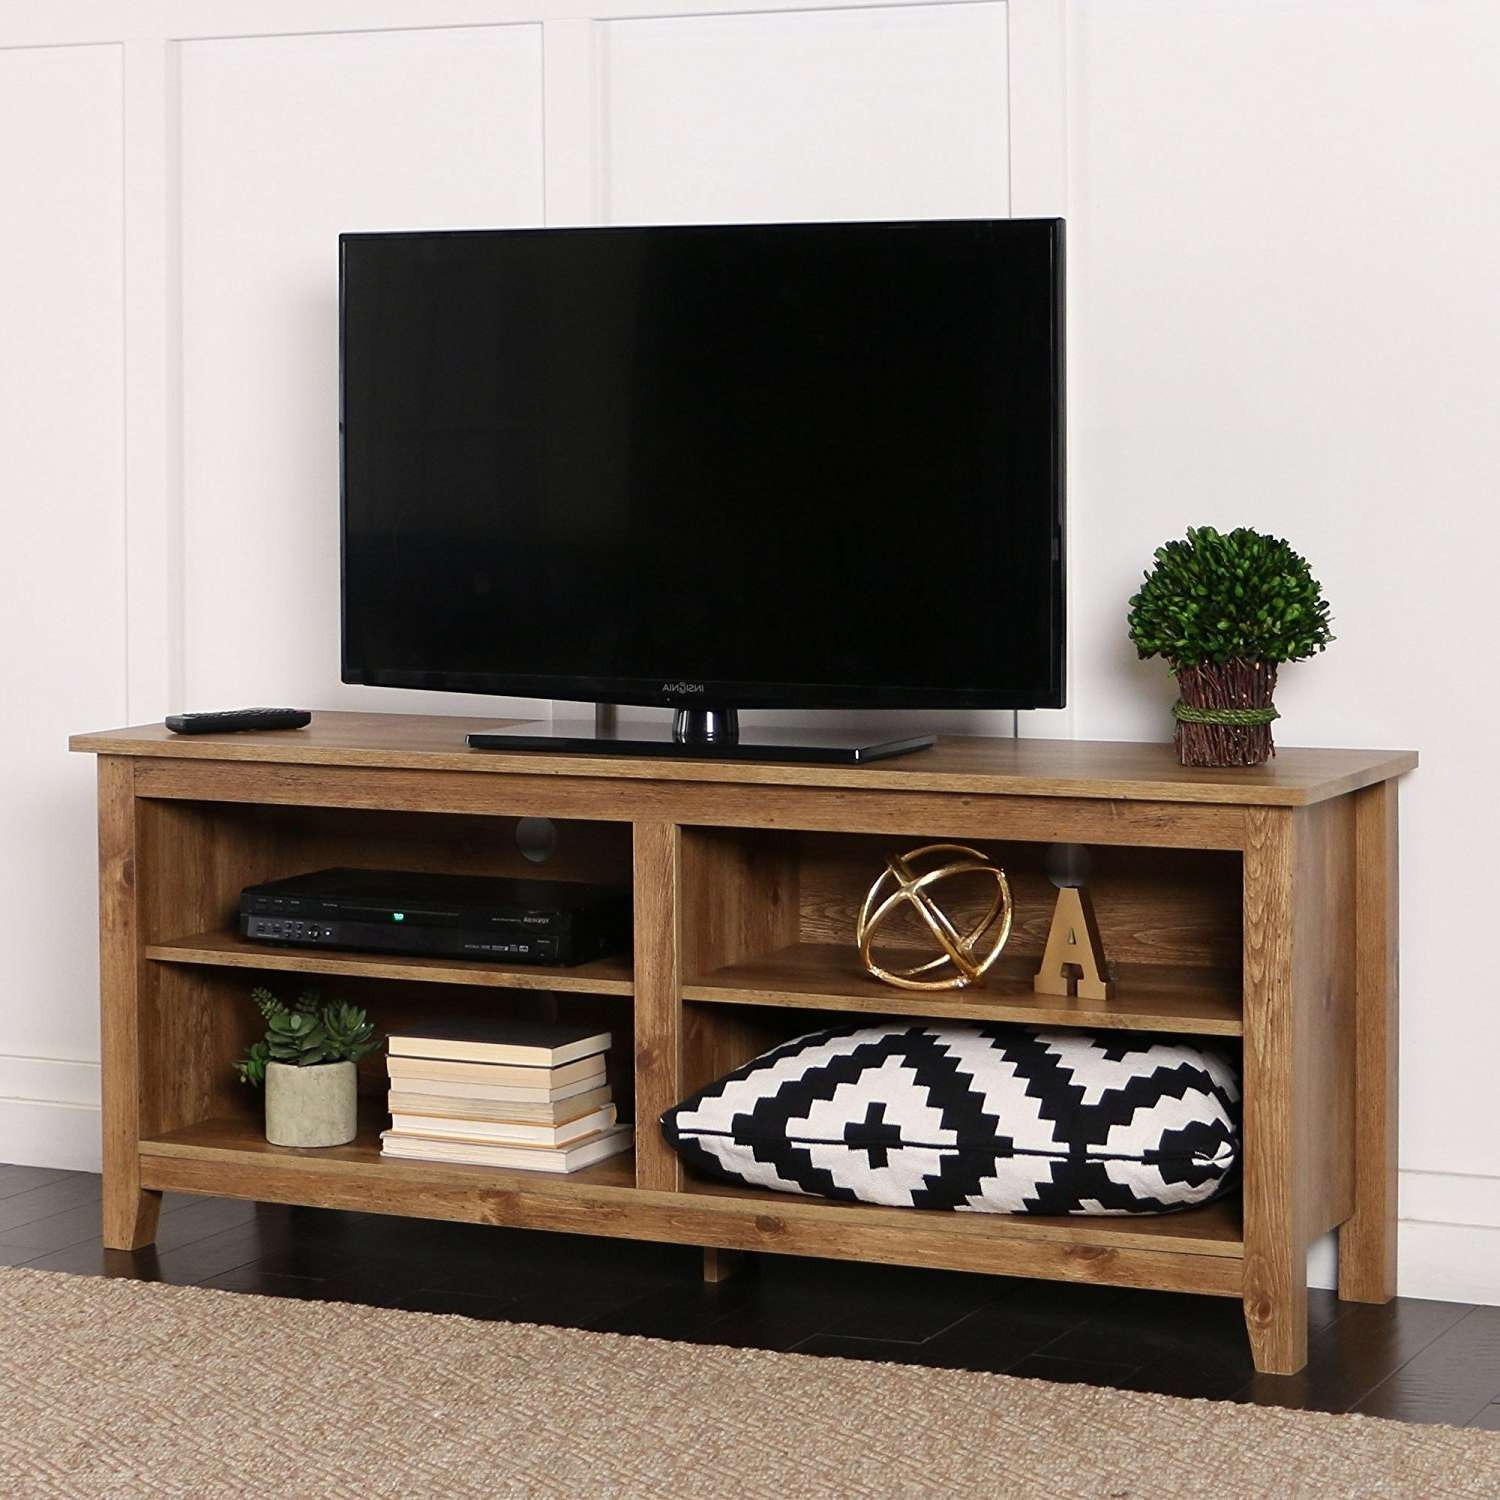 Inspirational Corner Tv Stands For 55 Inch Tv 90 For Your Interior Regarding 40 Inch Corner Tv Stands (Gallery 6 of 15)